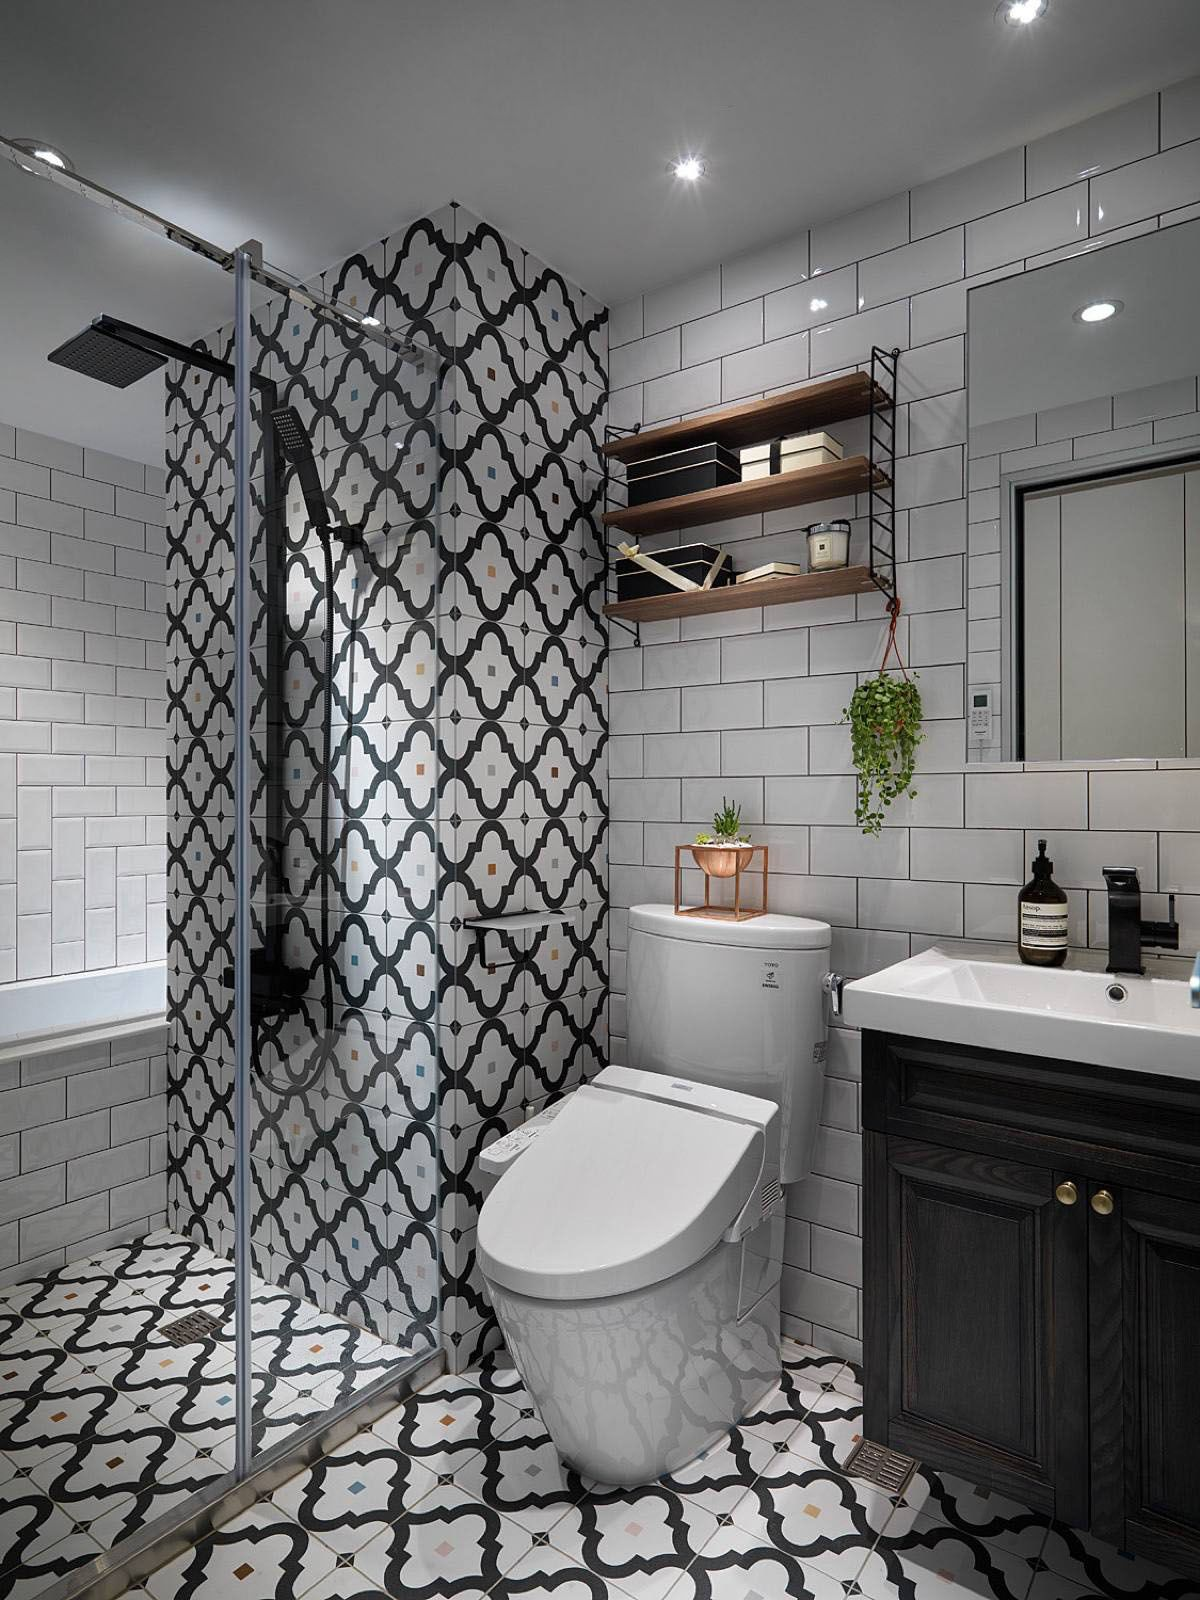 patterned-bathroom-tiles-in-scandinavian-style-bathroom